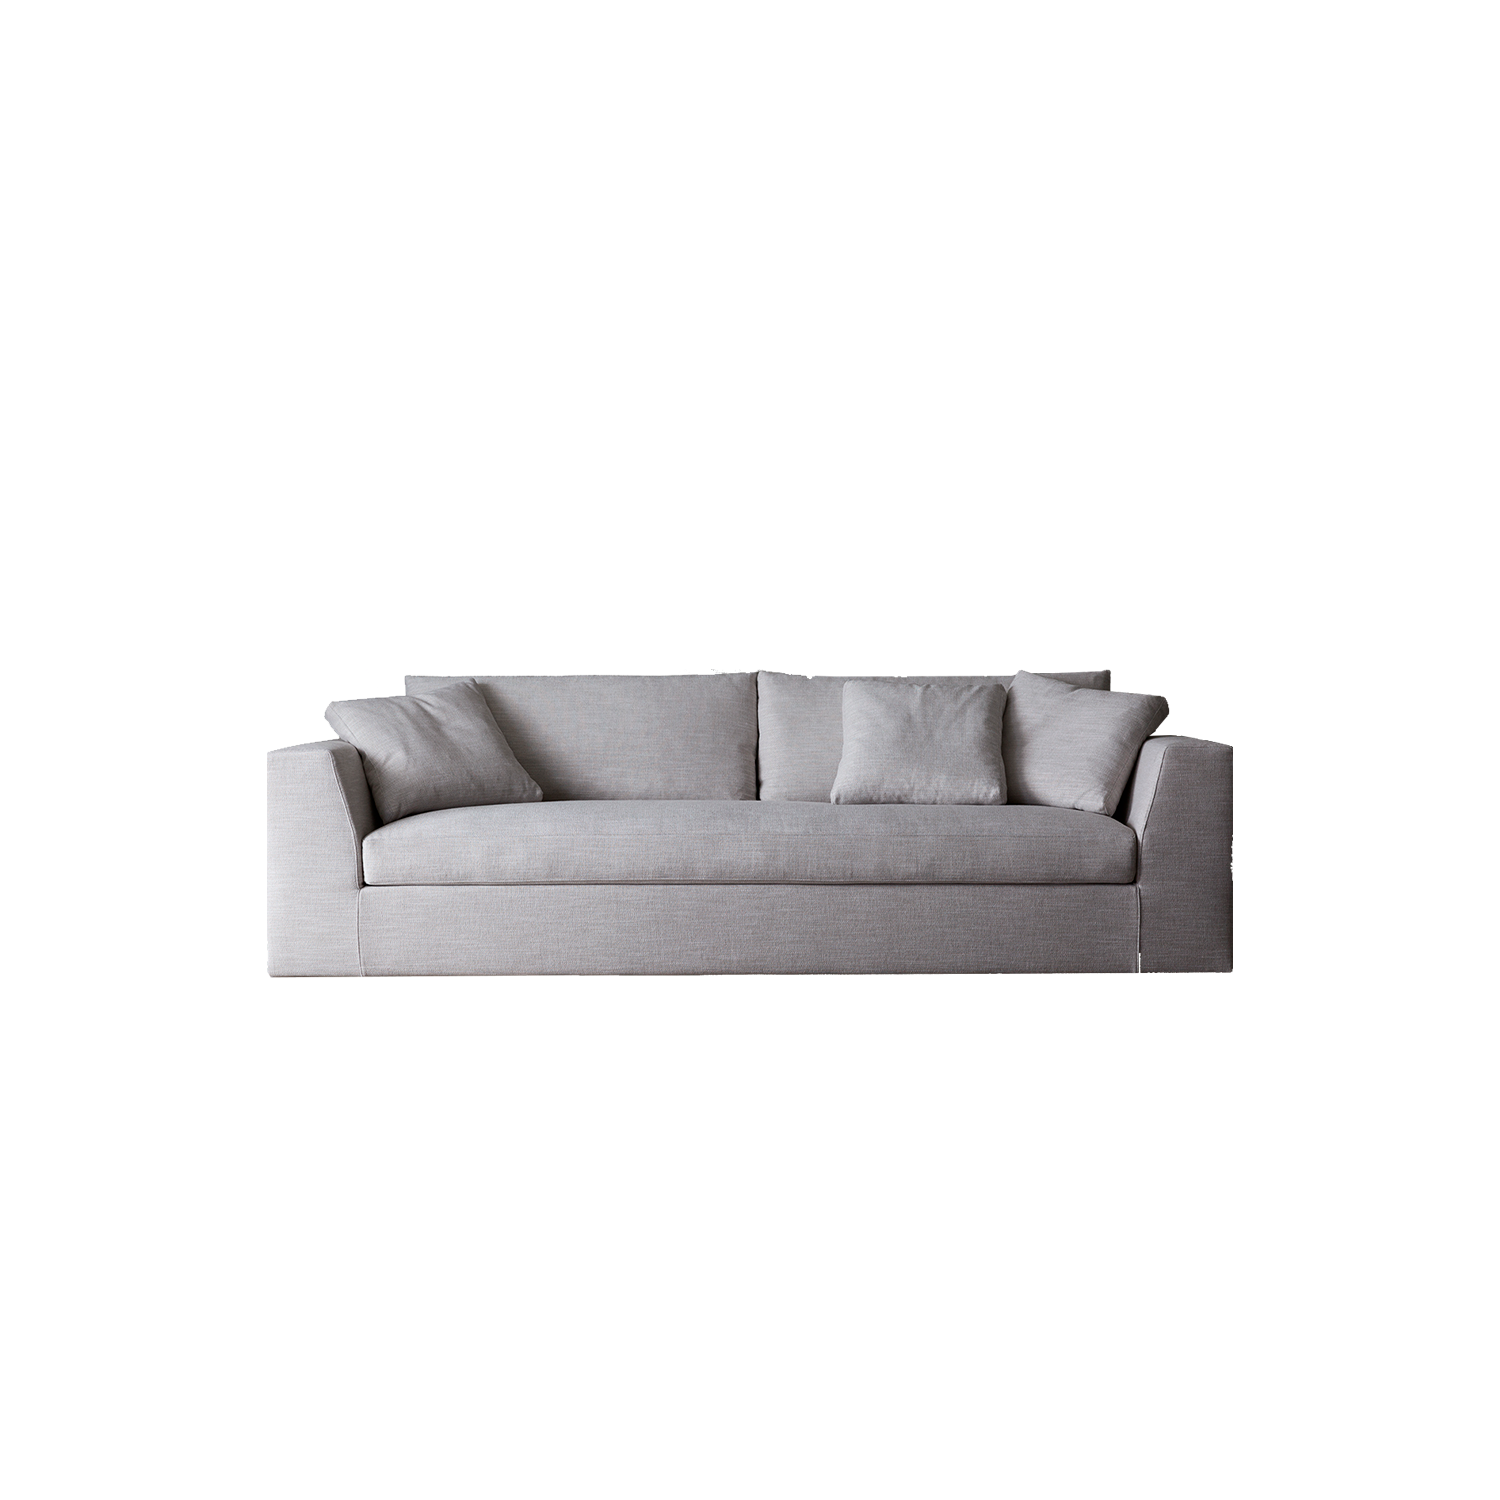 Louis Small Sofa - Contoured armrests with an oblique cut are the characteristics of this collection and, thanks to the seat cushions, the total look results both softer and sophisticated. The possibility to play with its various elements with different depths allows to have versatile and eclectic combinations.  The sofa is available in different colours and configurations. Please enquire for more details   Matter of Stuff